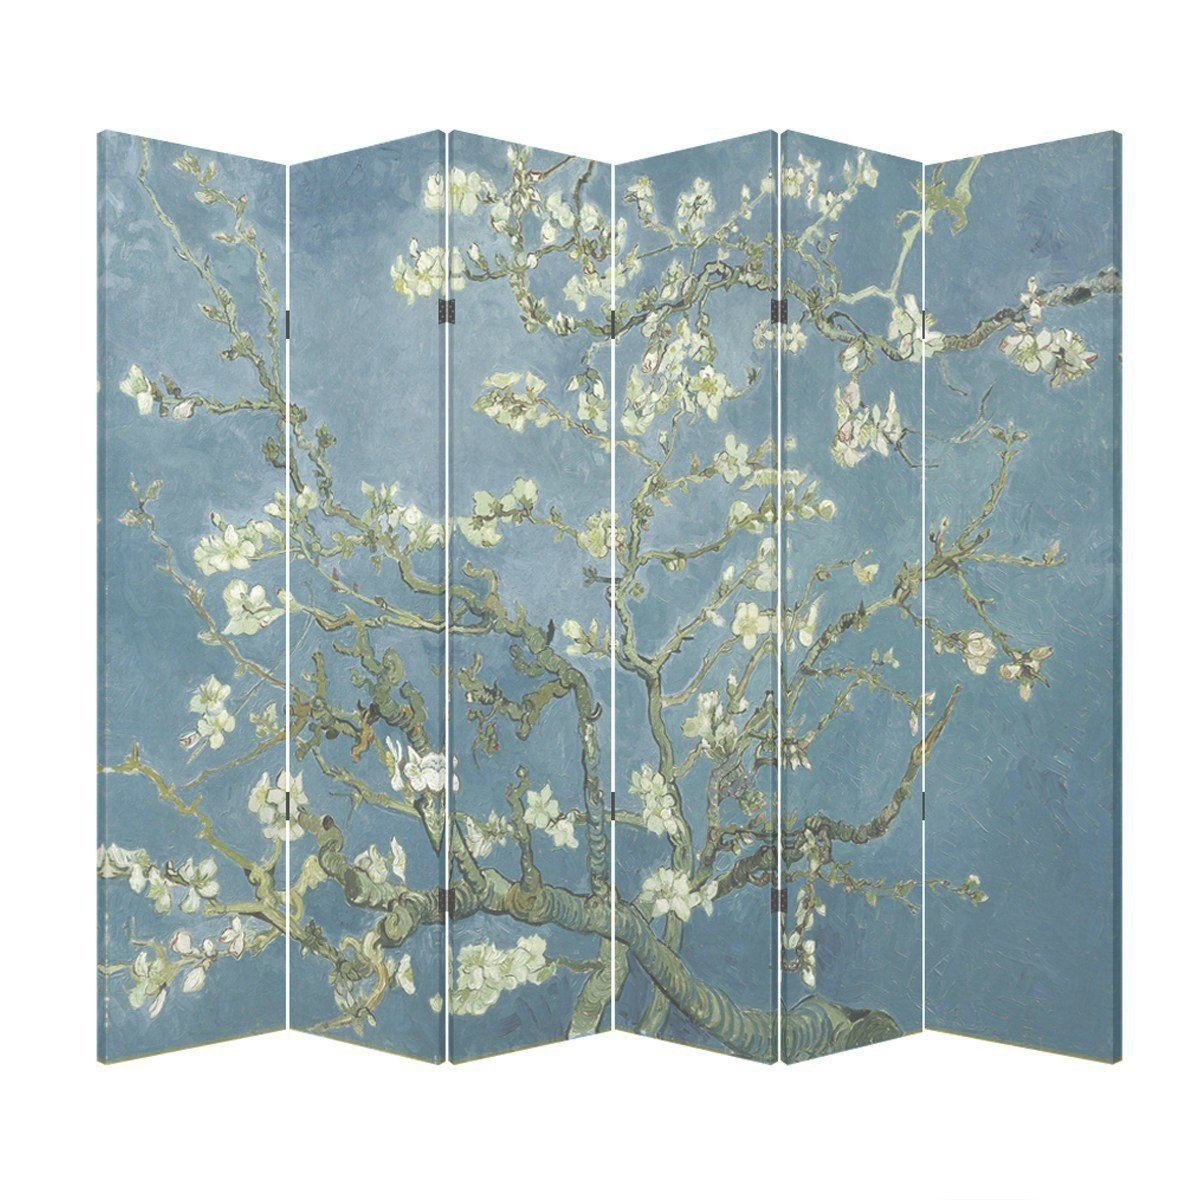 6 Panel Office Wood Folding Screen Decorative Canvas Privacy Partition Room  Divider   Vincent Van Goghu0027s